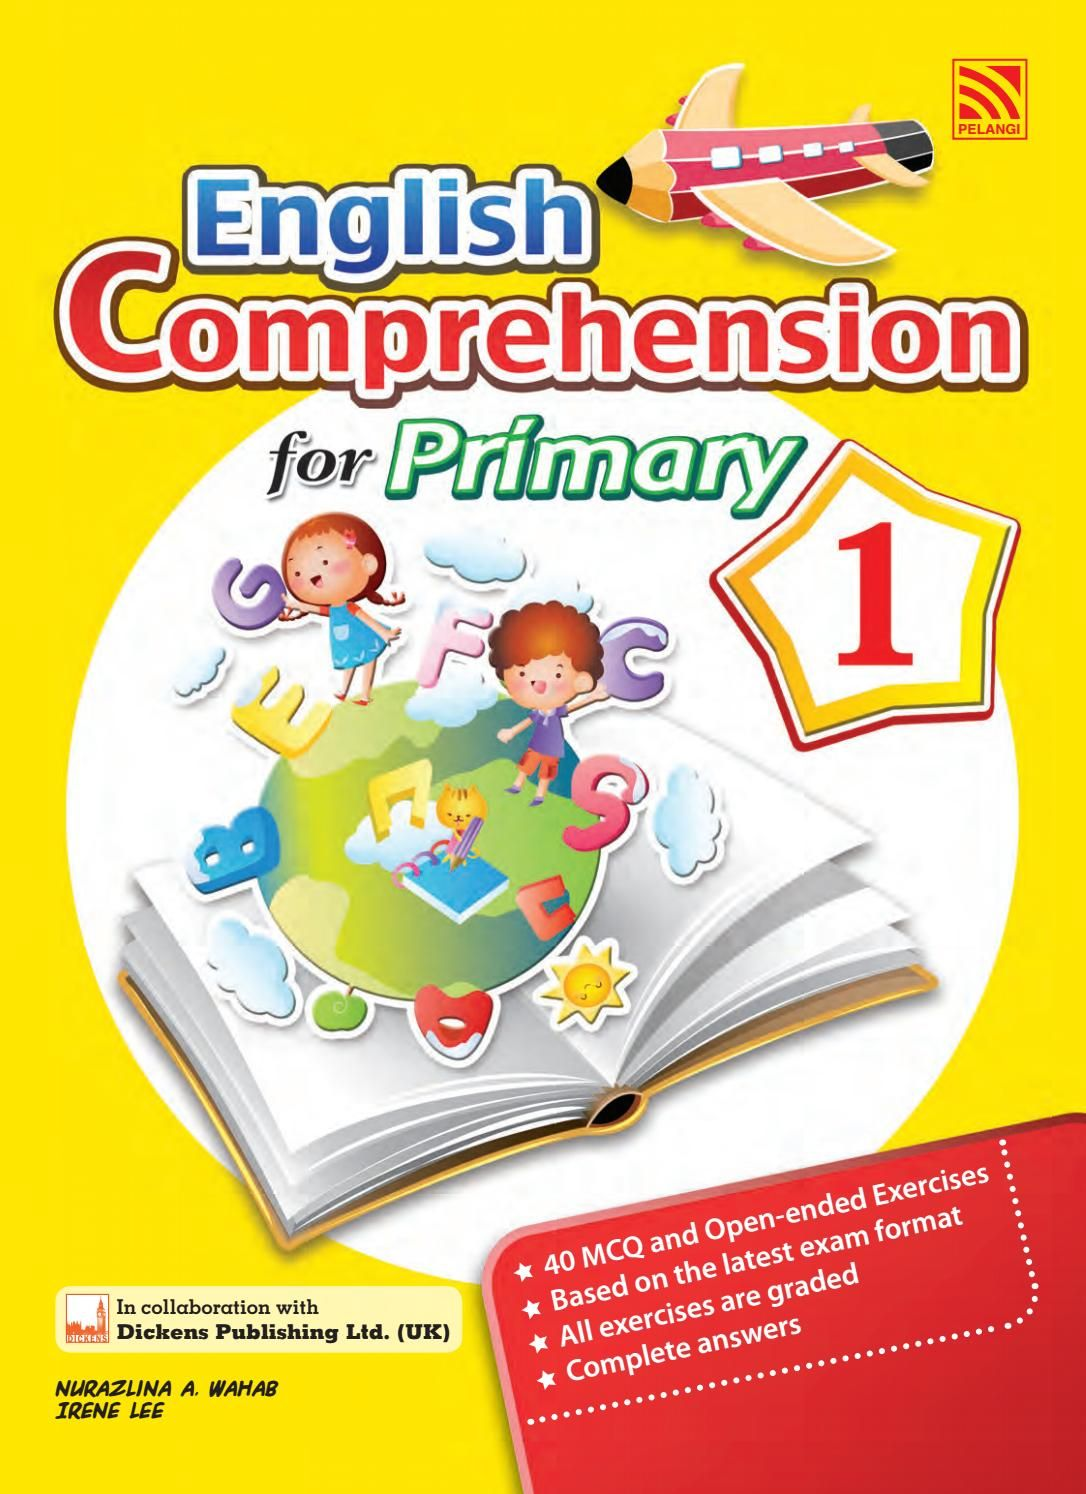 English Comprehension For Primary 3 Learning English For Kids English Books For Kids English Grammar Book